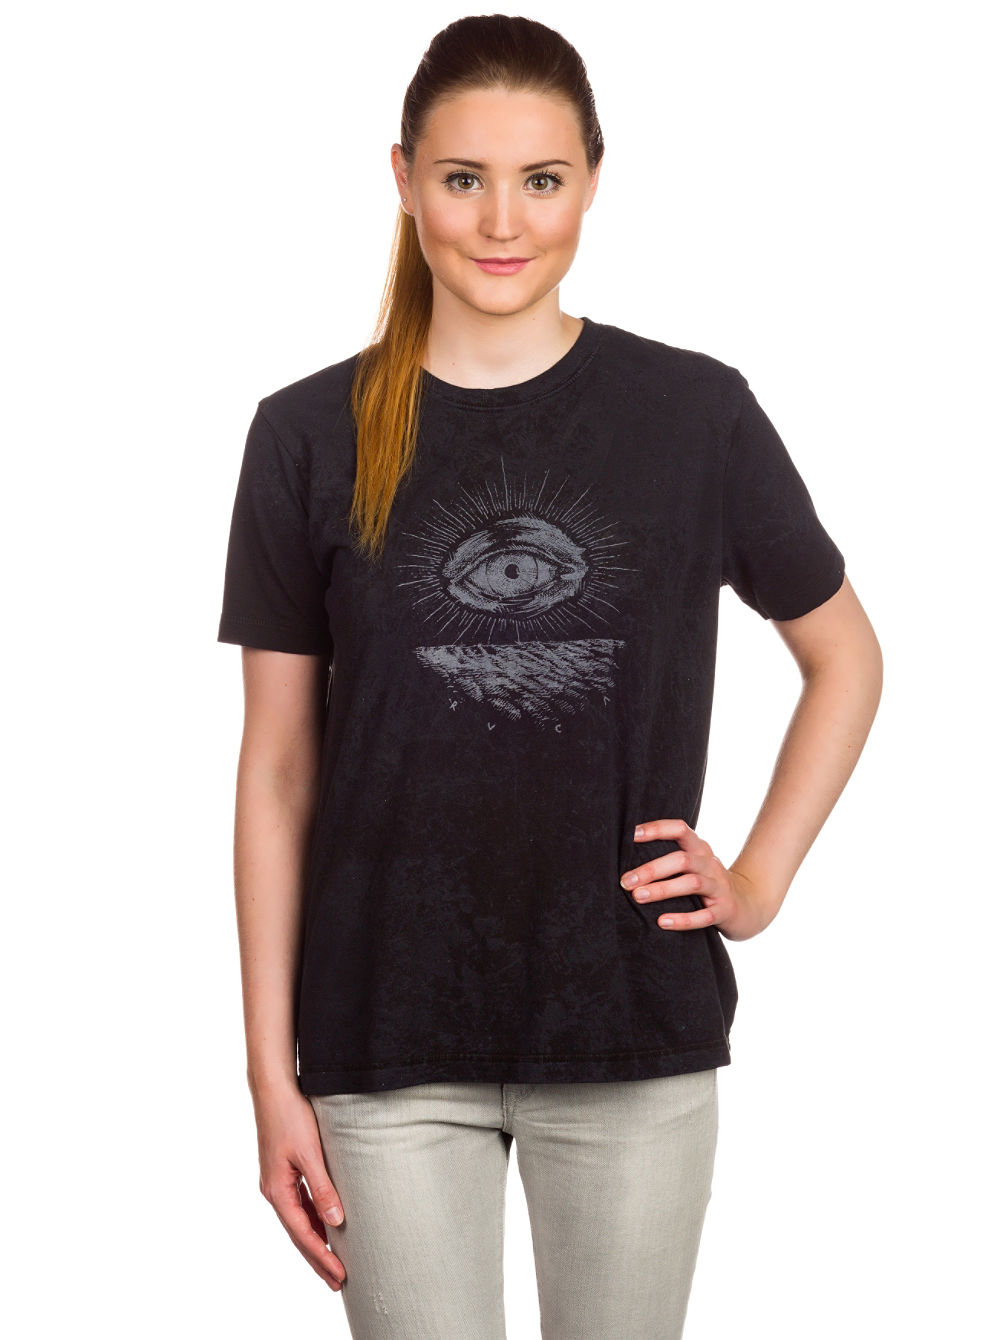 Eye Sea T-Shirt